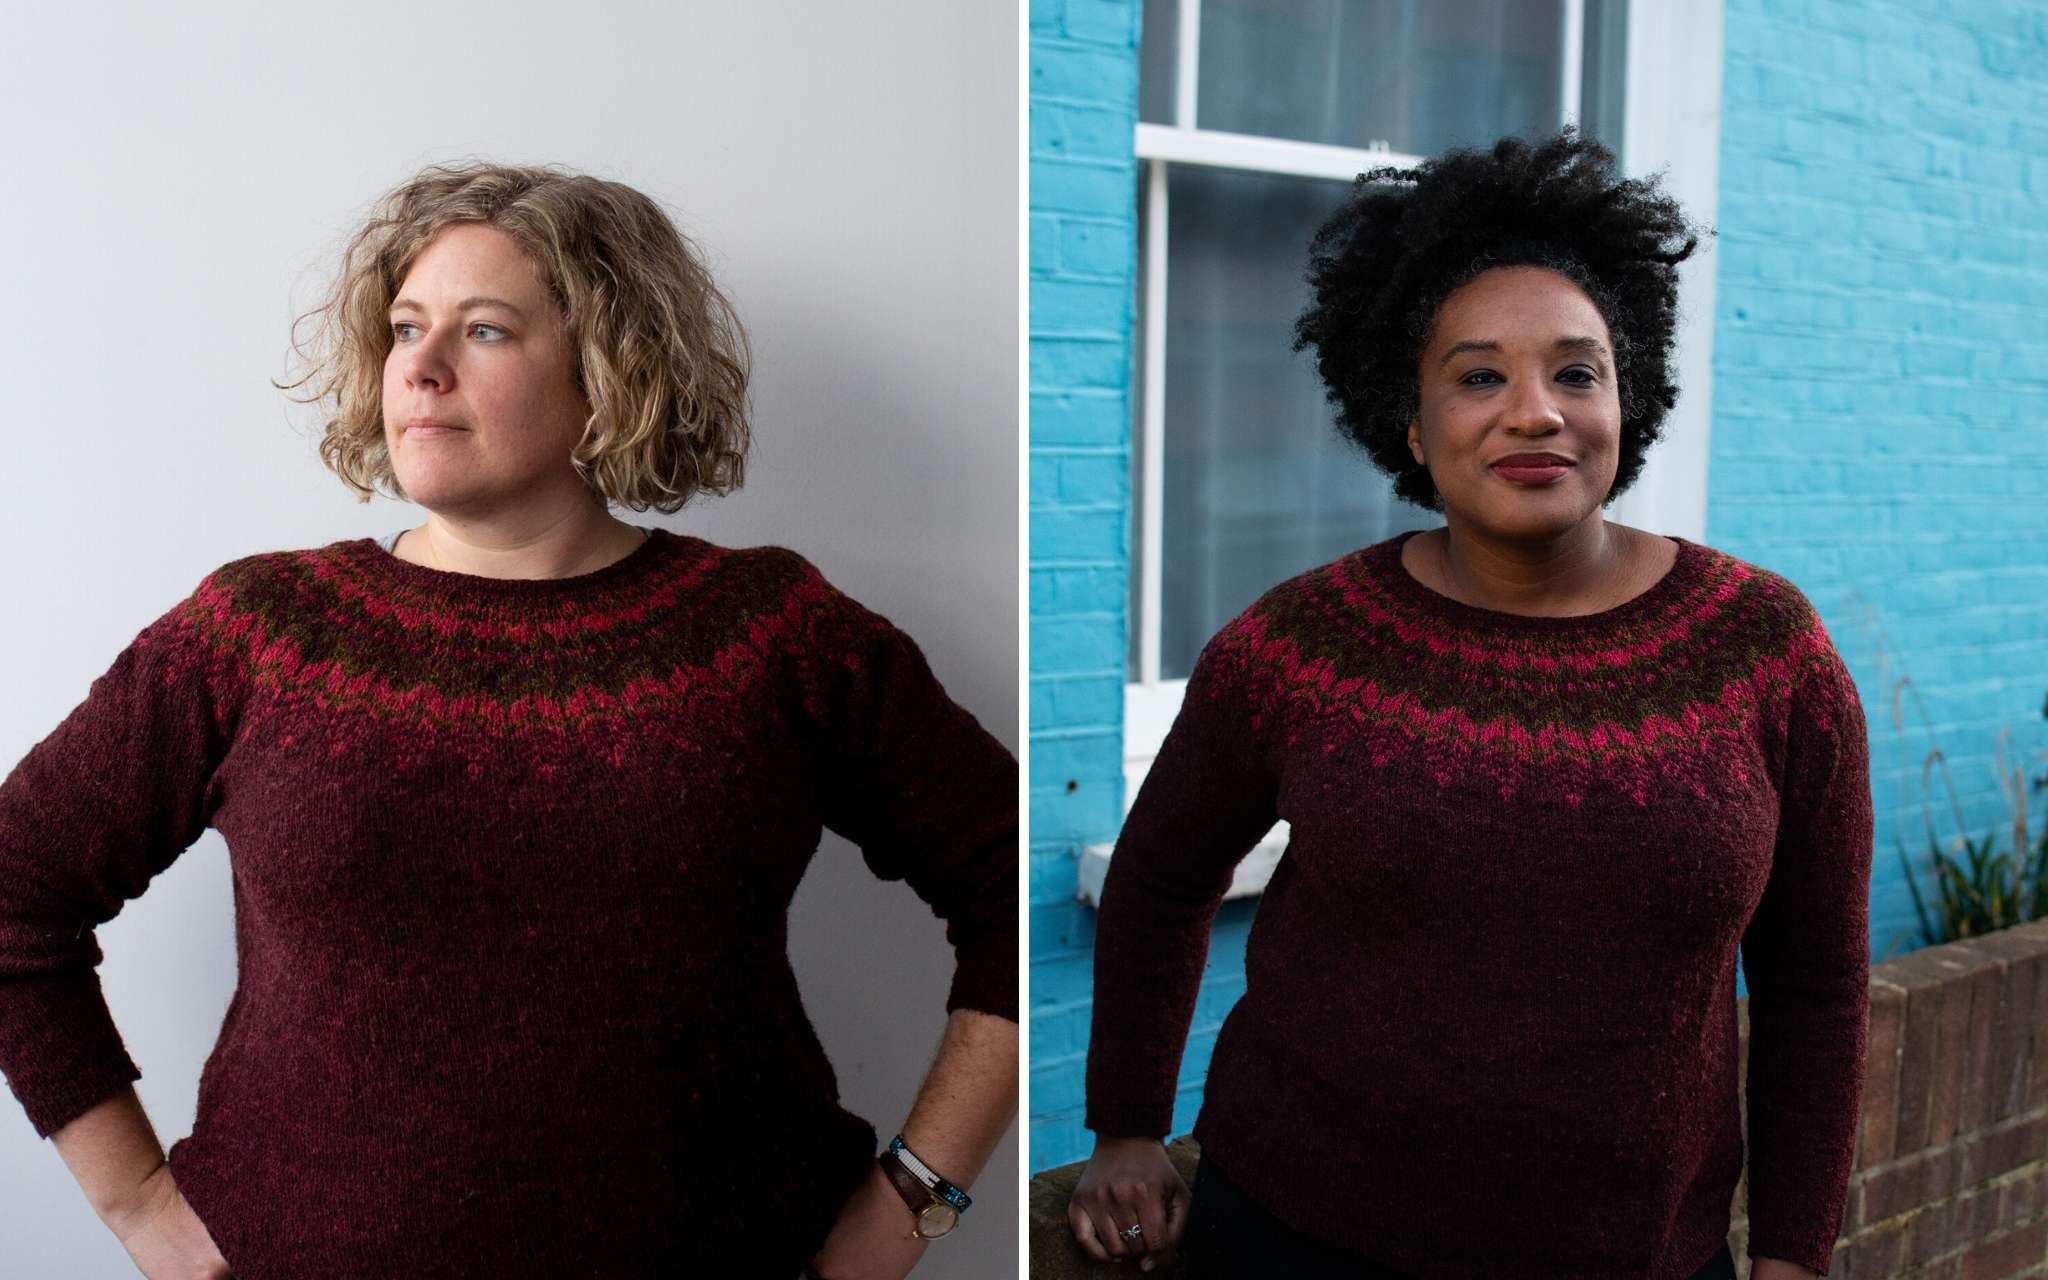 Collage of a Black woman and a white woman both with curly hair wearing the same threipmuir sweater